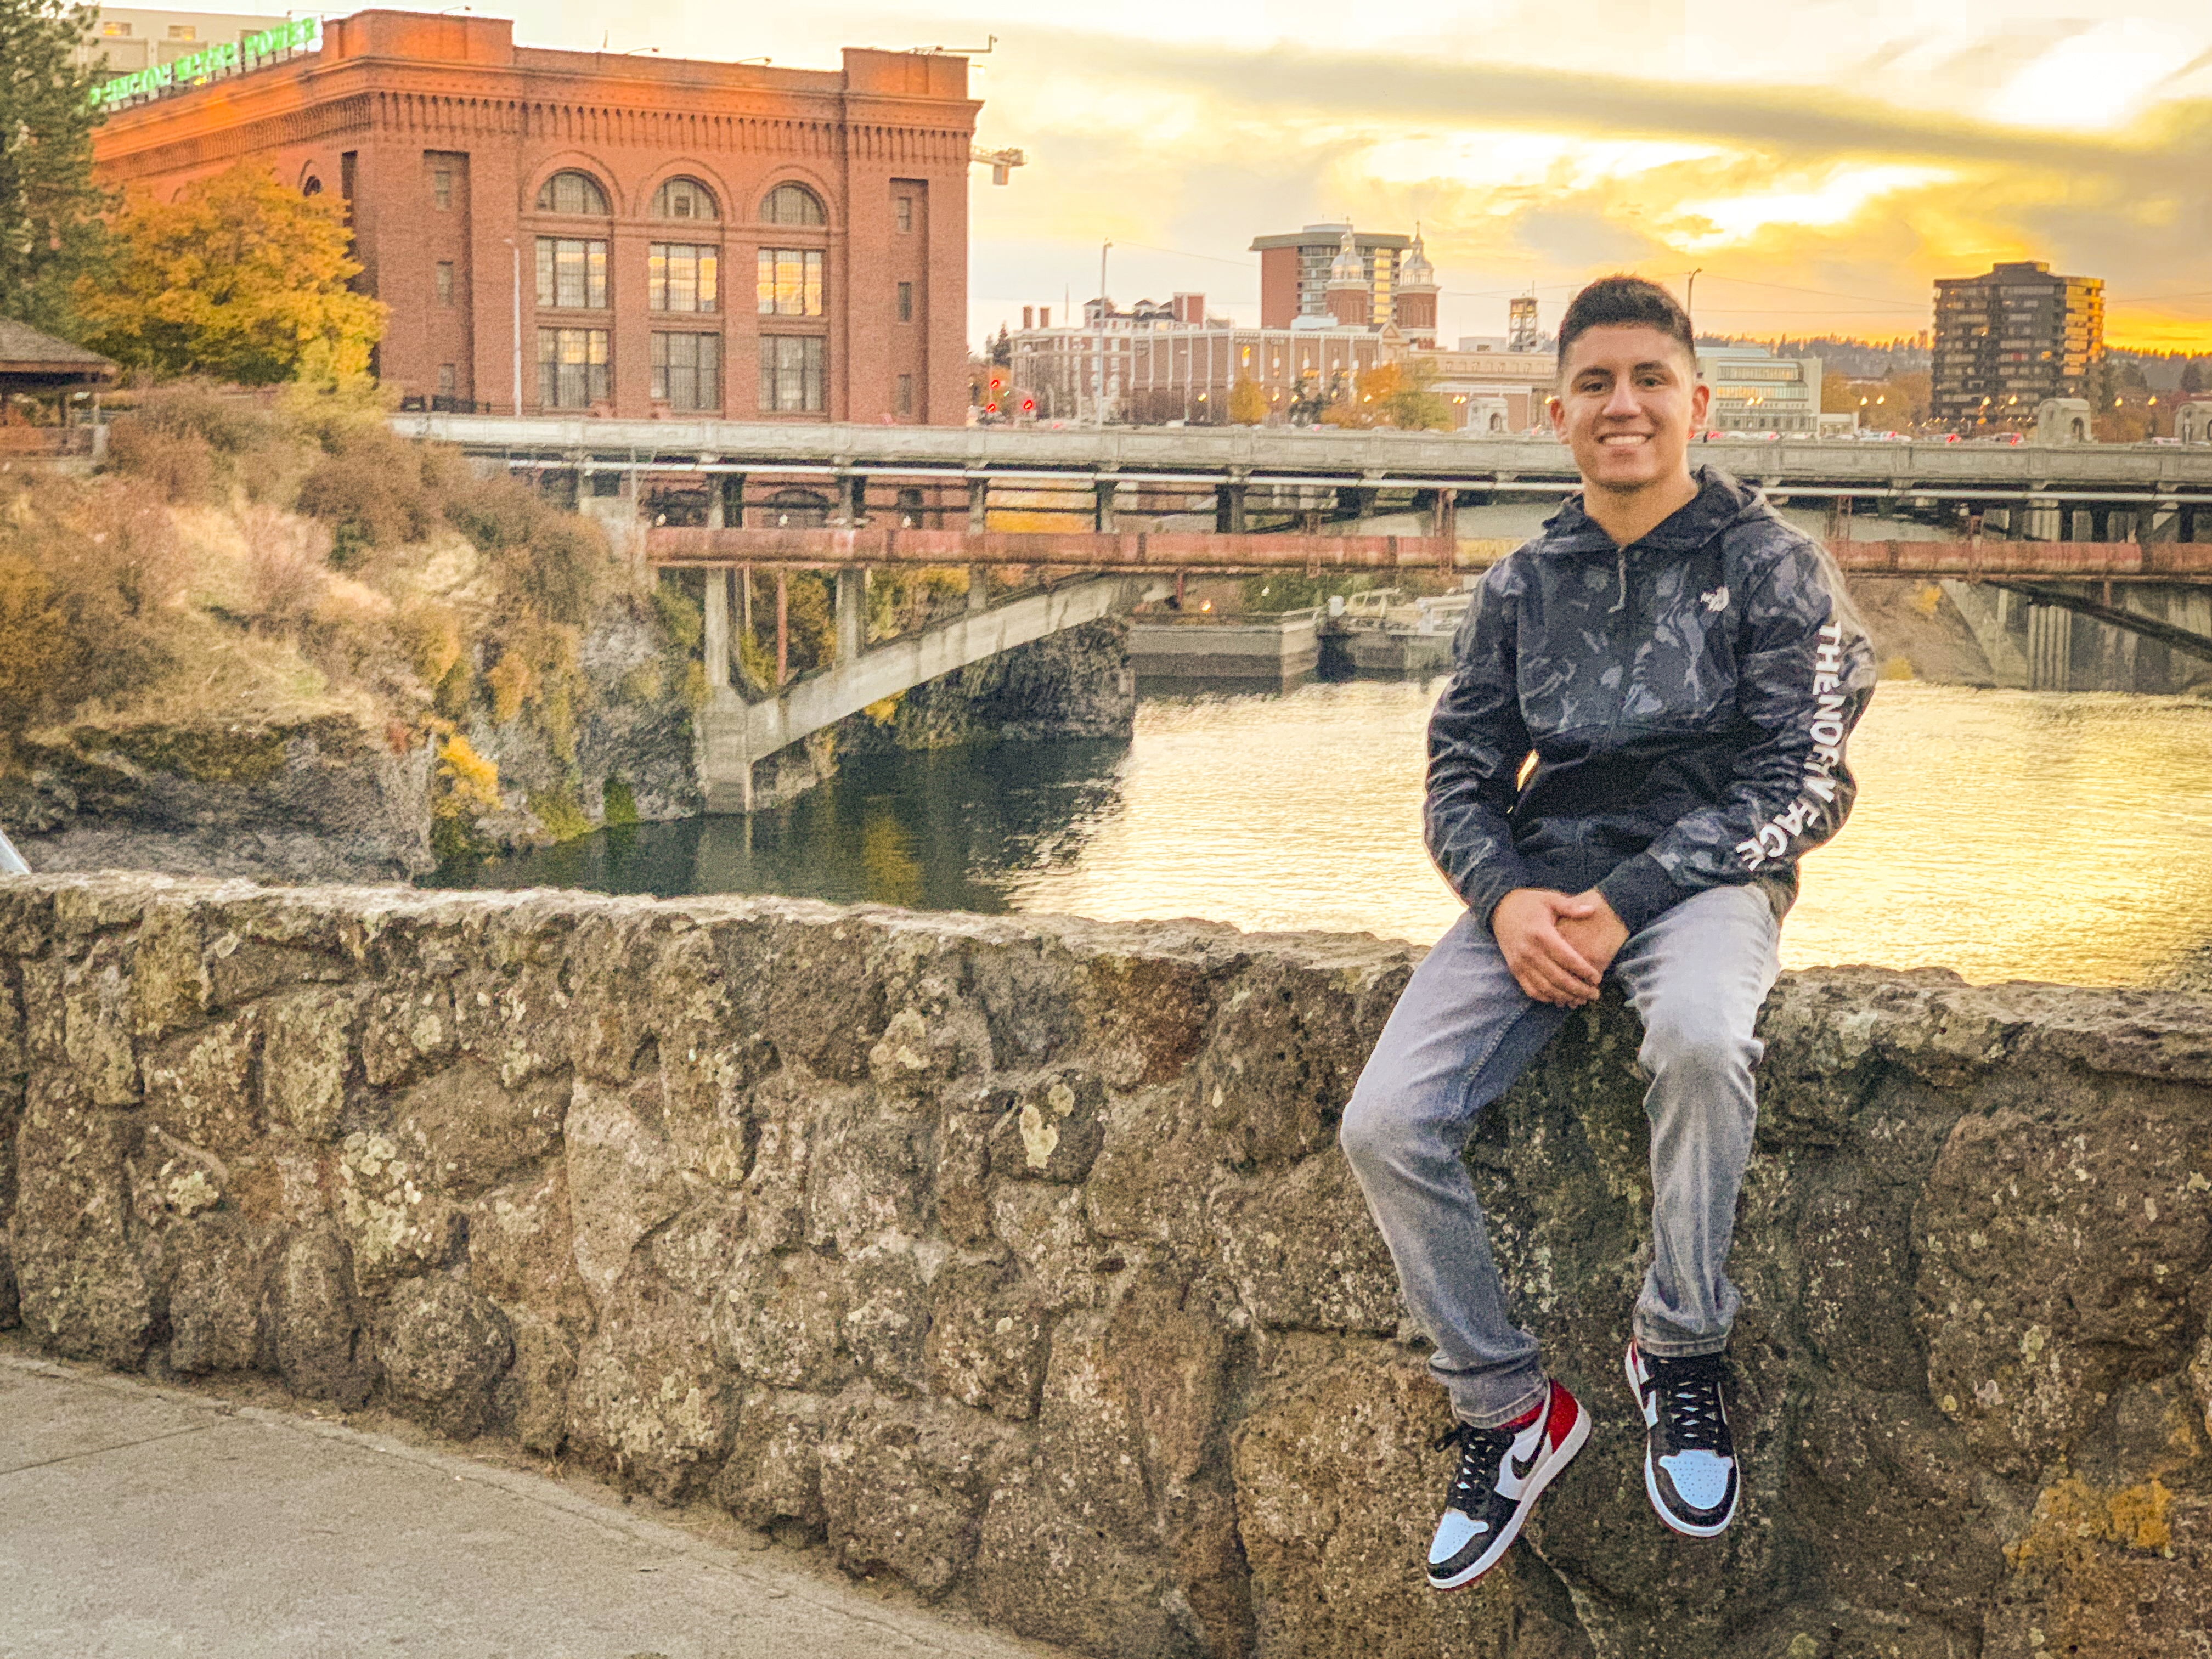 Senior Portraits – Alfonso